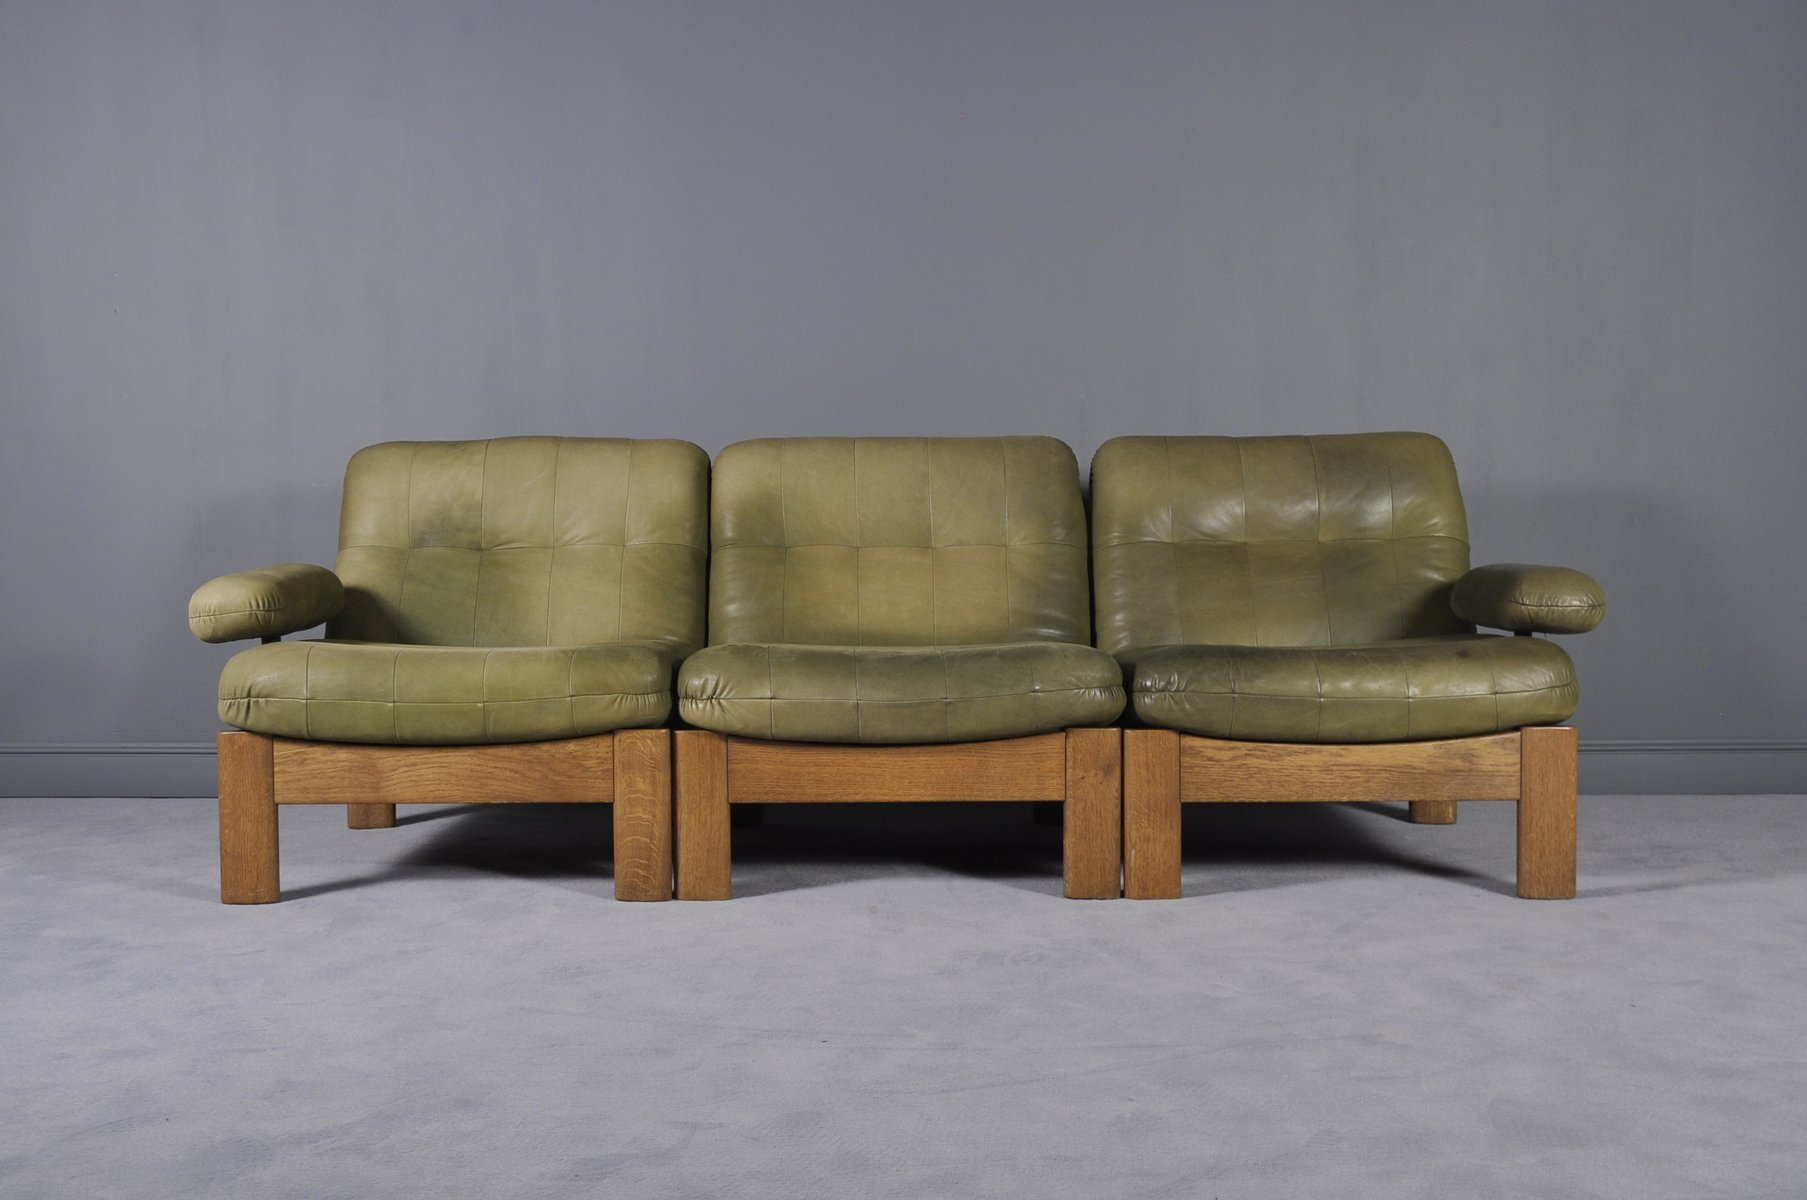 Sectional Green Leather Sofa From Leolux, 1970s